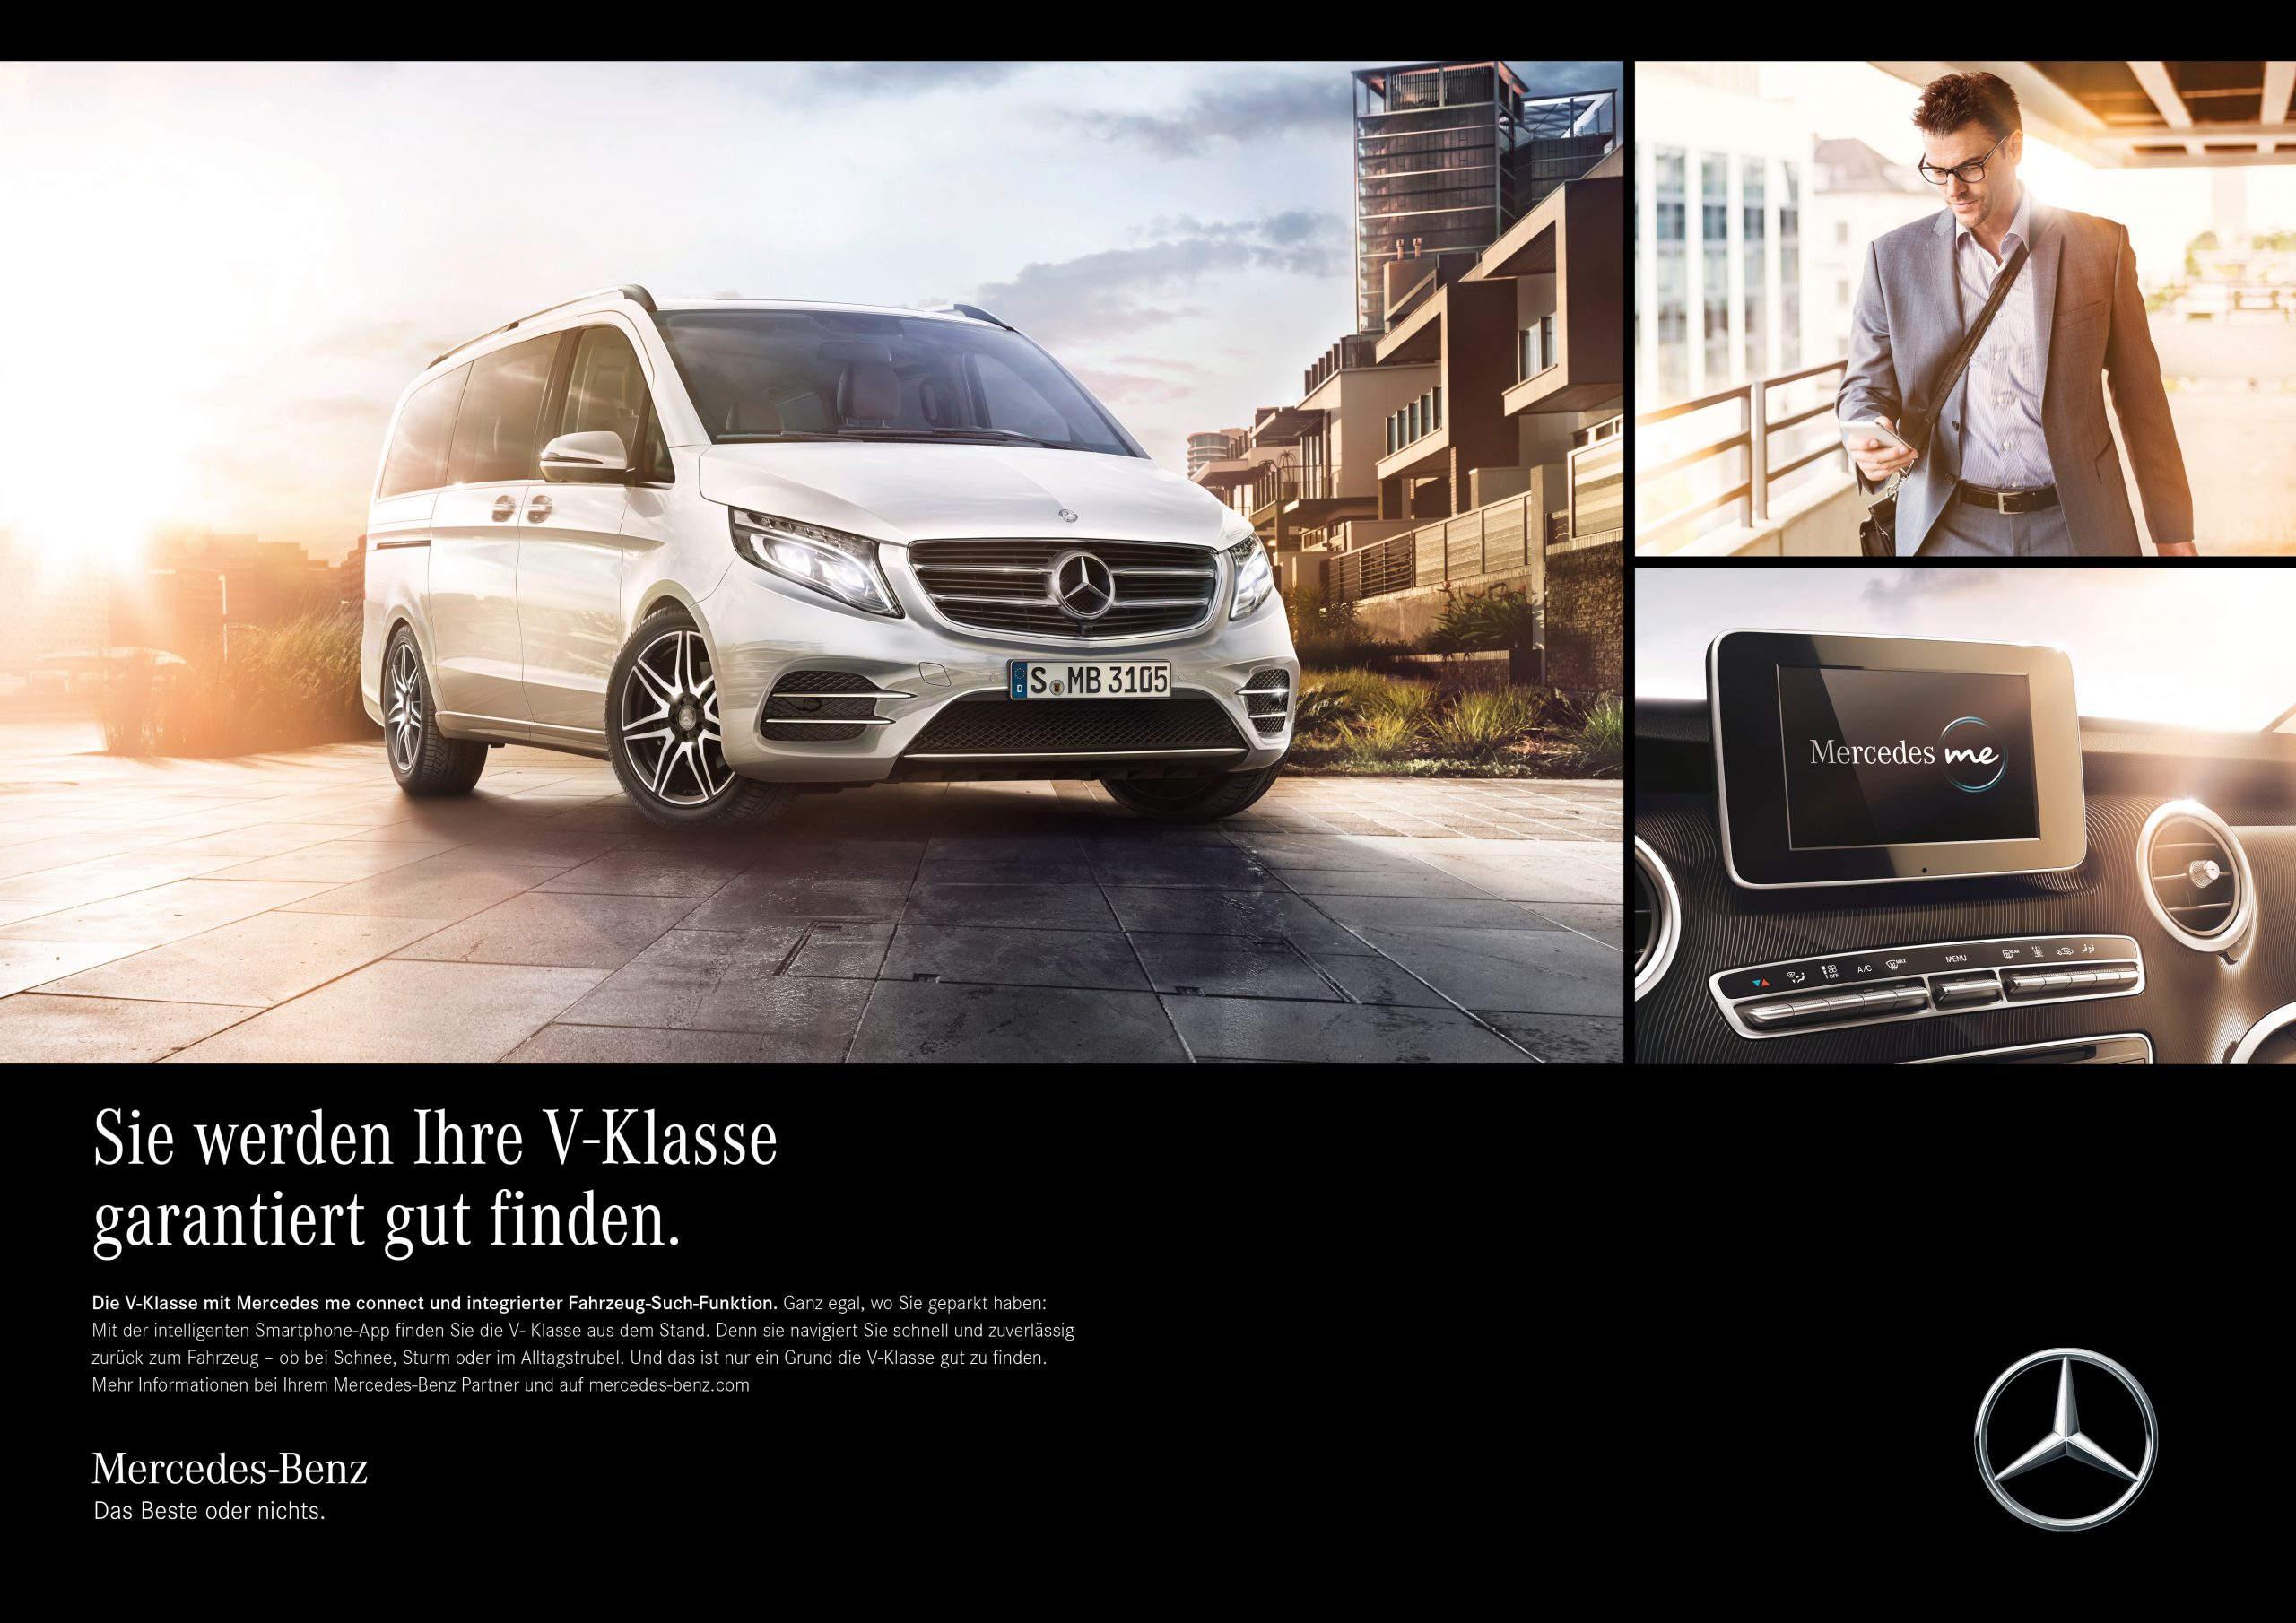 160523_MB_V-Class_Connectivity_AD 2-1_ger_Multipic_4